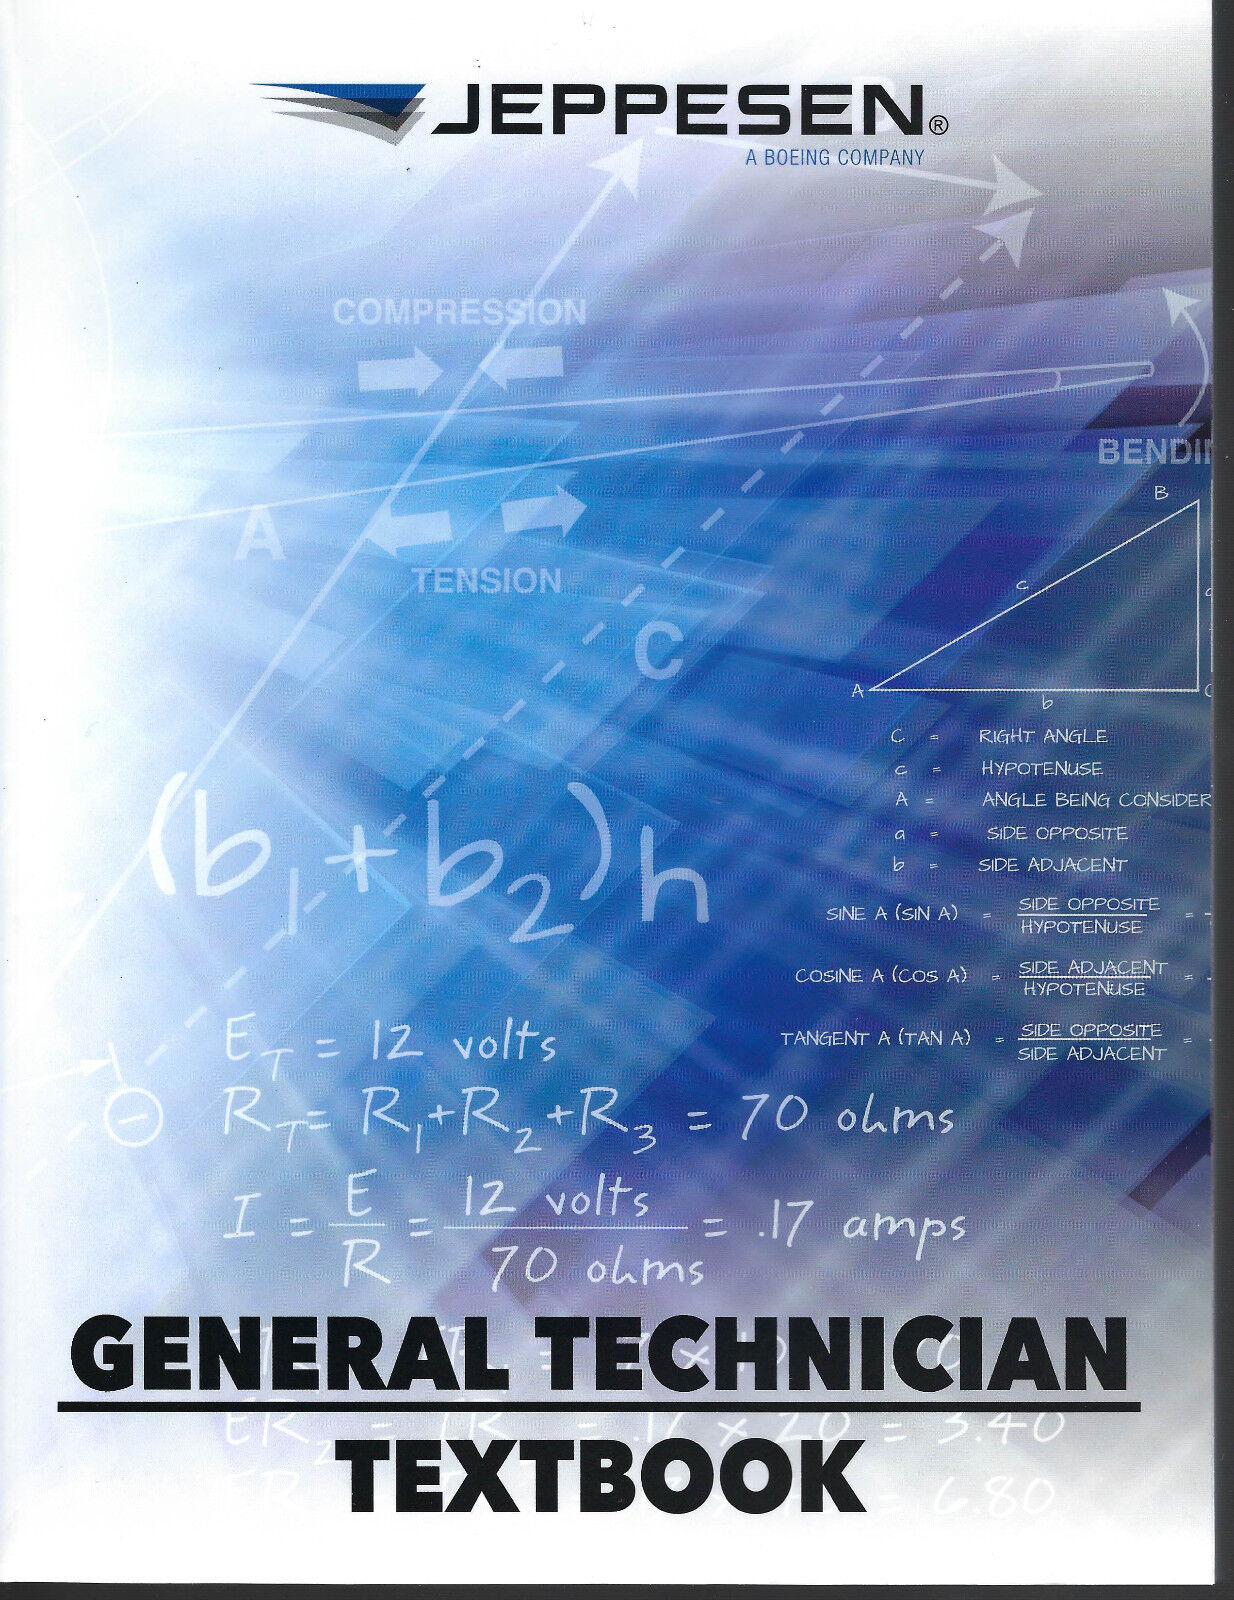 Jeppesen A P Aviation Maintenance Technician General Textbook 10002467 005 Ebay